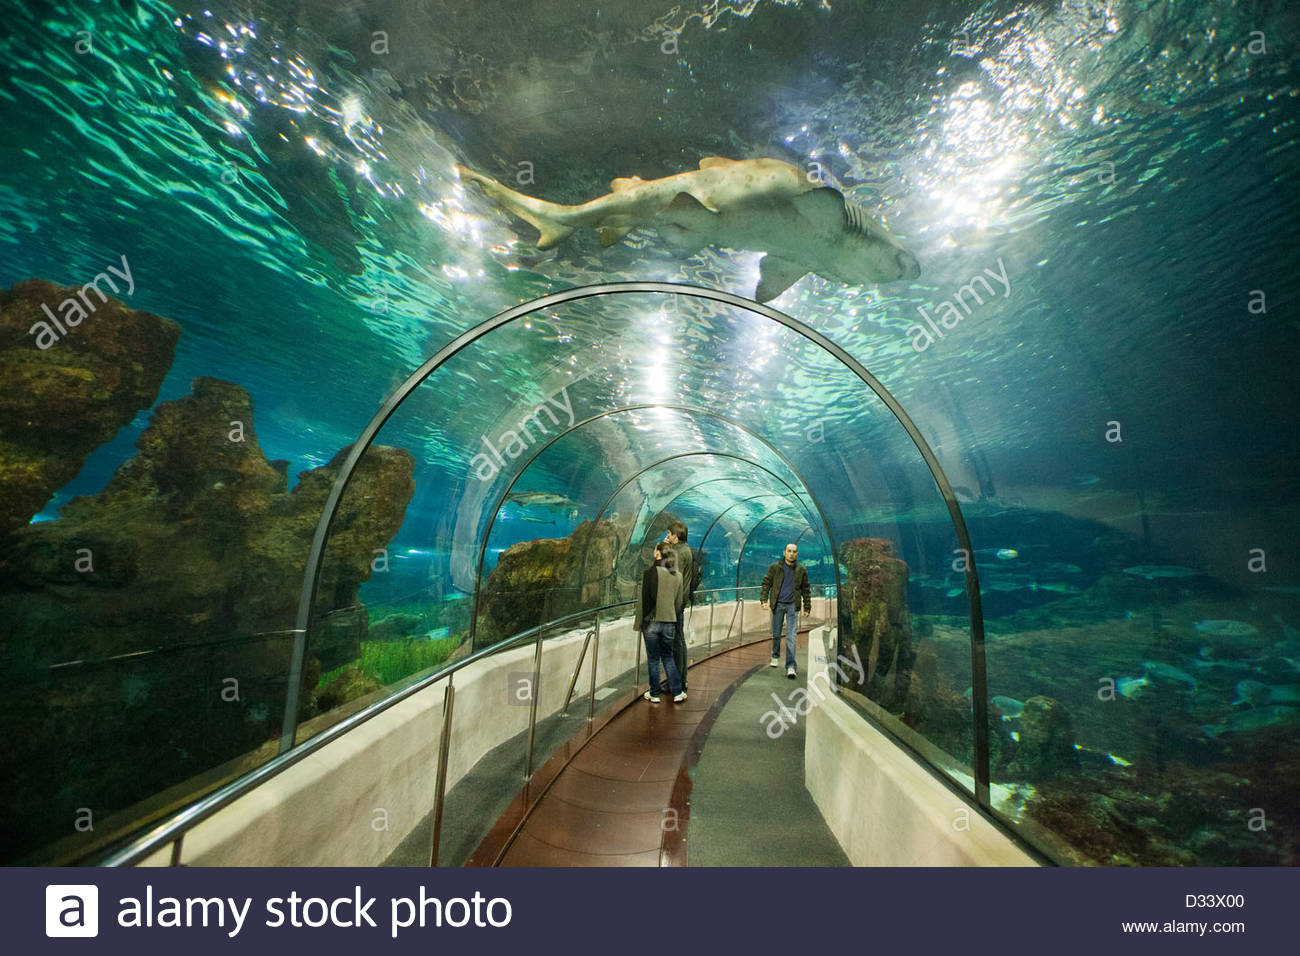 shark,aquarium,barcelona,catalonia,spain - Stock Image